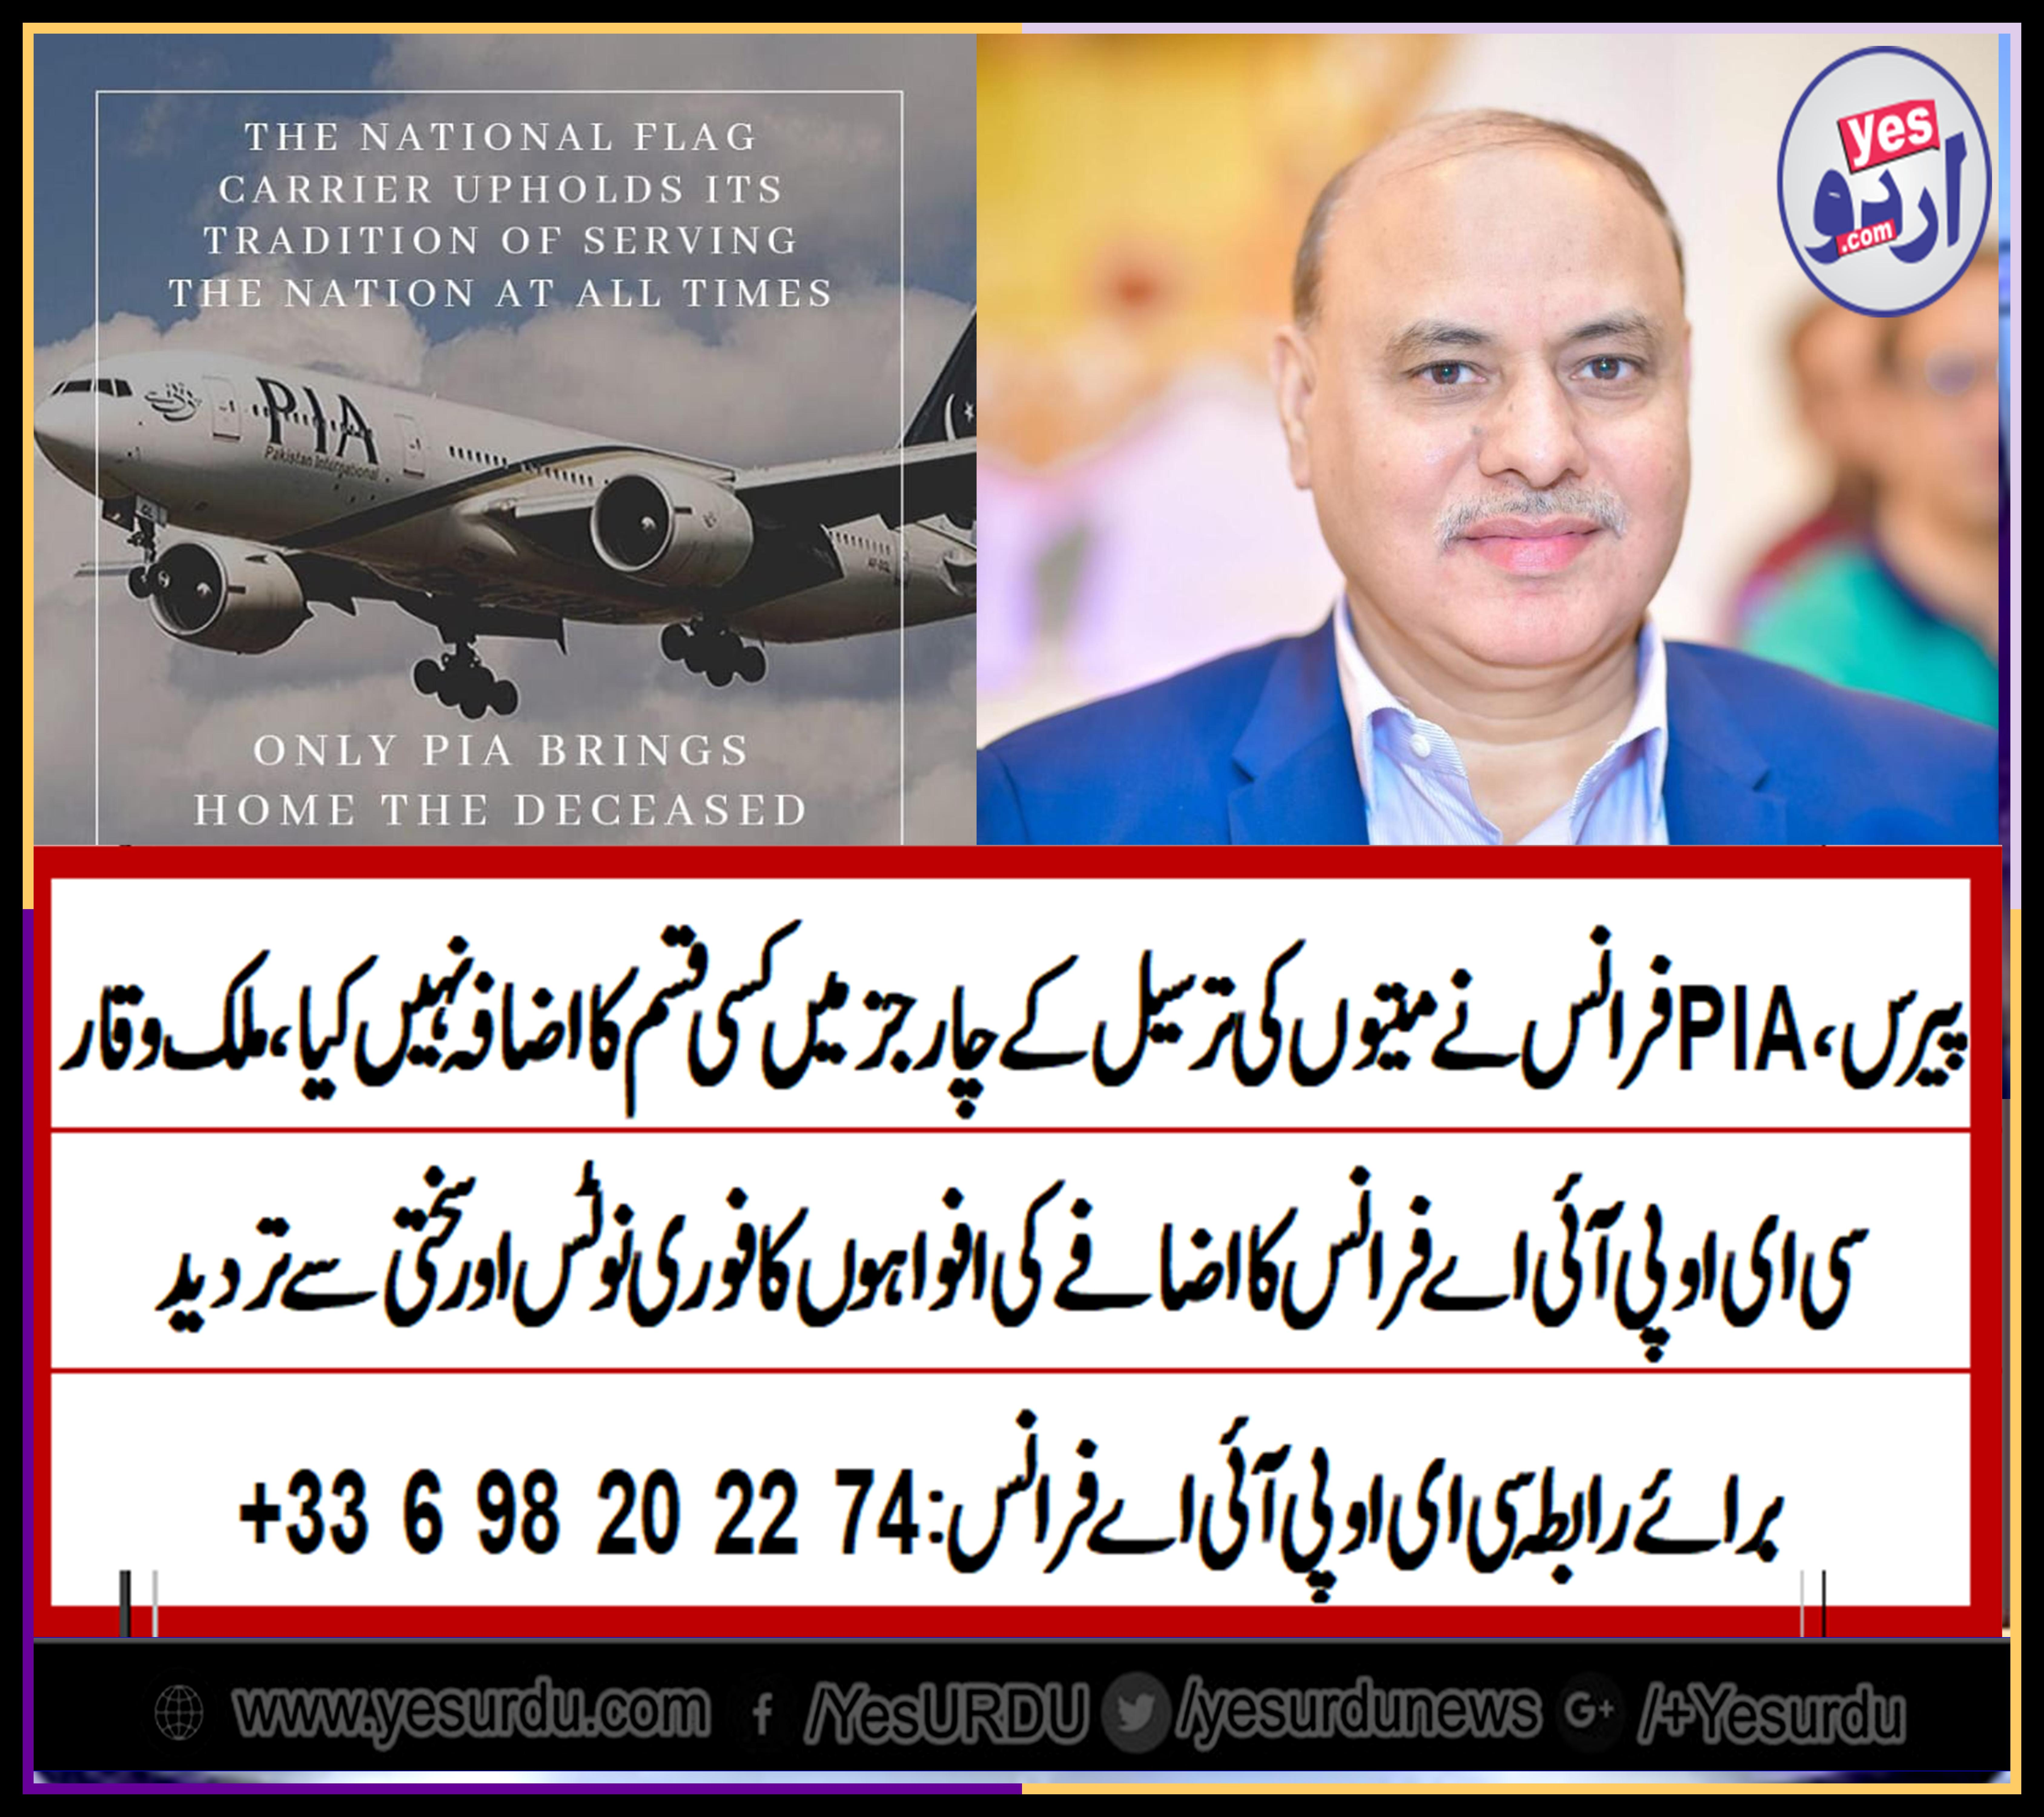 CEO, PIA, FRANCE, MALIK WAQAR, CONDEMNED, LIES, SPREADING, AROUND, ABOUT, PIA, INCREASING, CHARGES, OF, DEAD, BODIES, CARRIAGE, TO, PAKISTAN, FROM, FRANCE